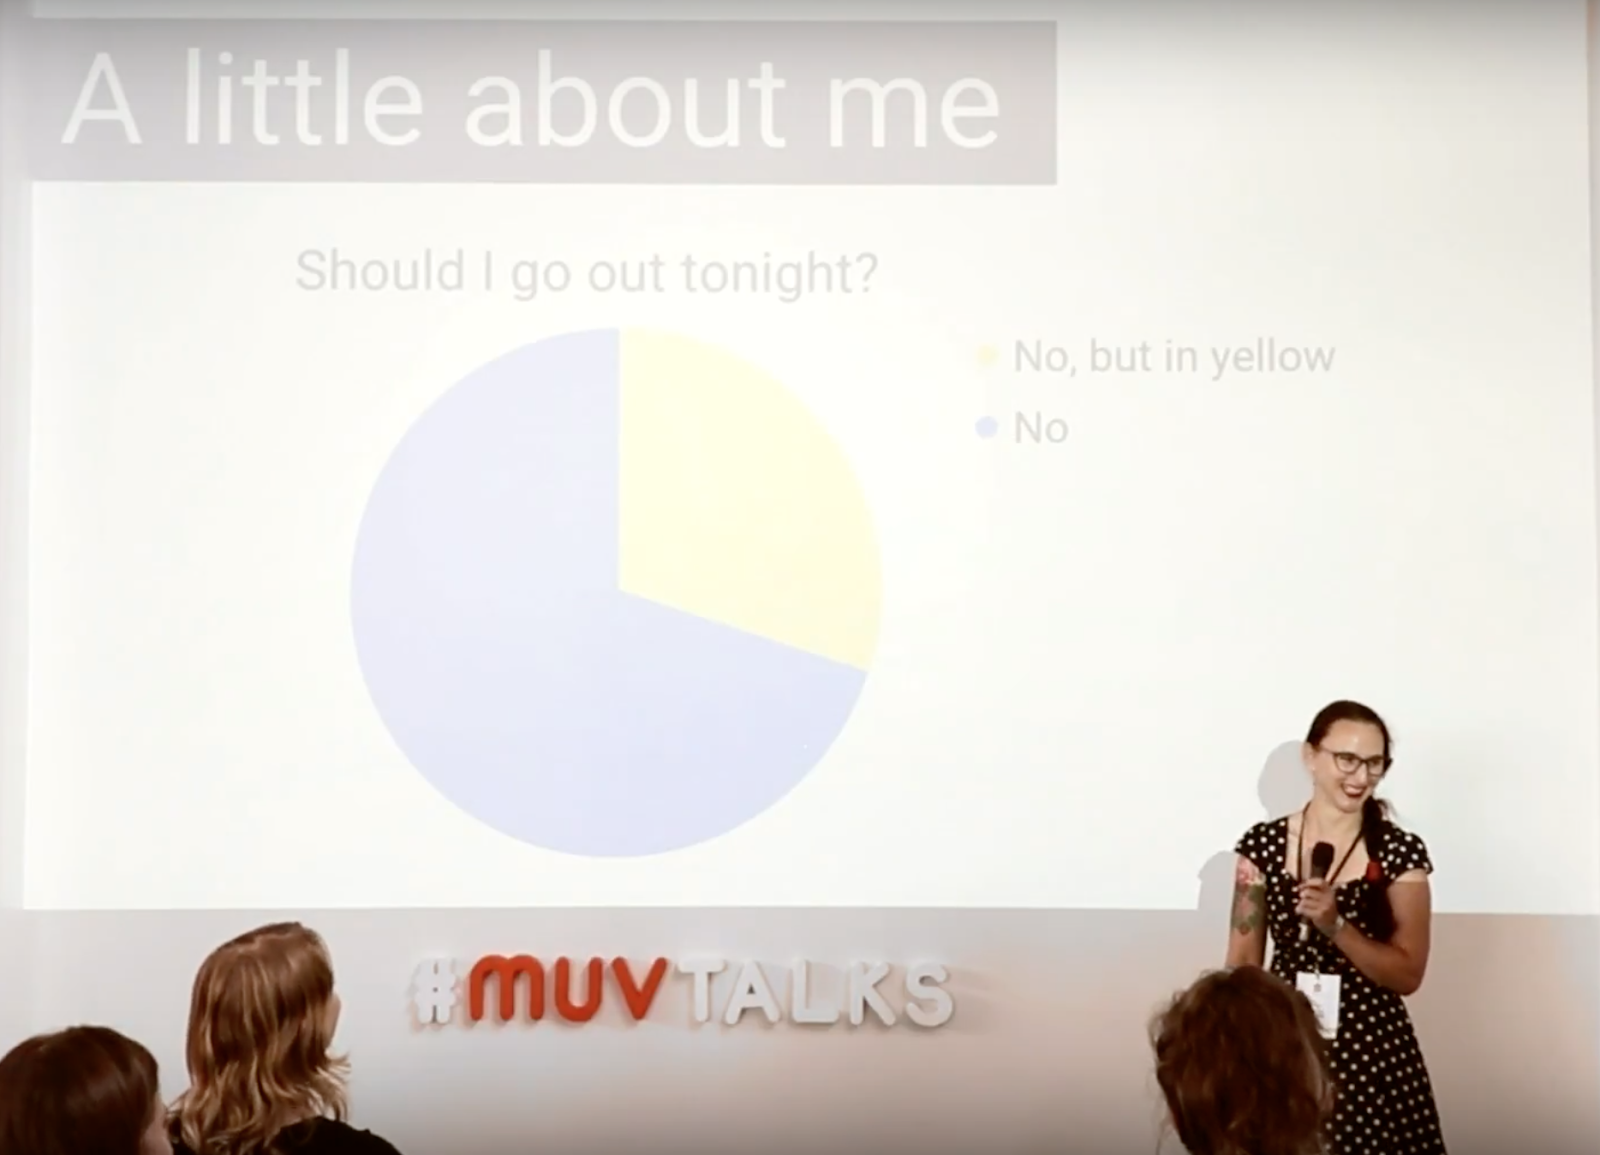 """Tanya giving a presentation at the MUV talks. Pie chart answers the questions """"Should I go out tonight?"""" and the answers are: """"No"""" and """"No, but in yellow"""""""